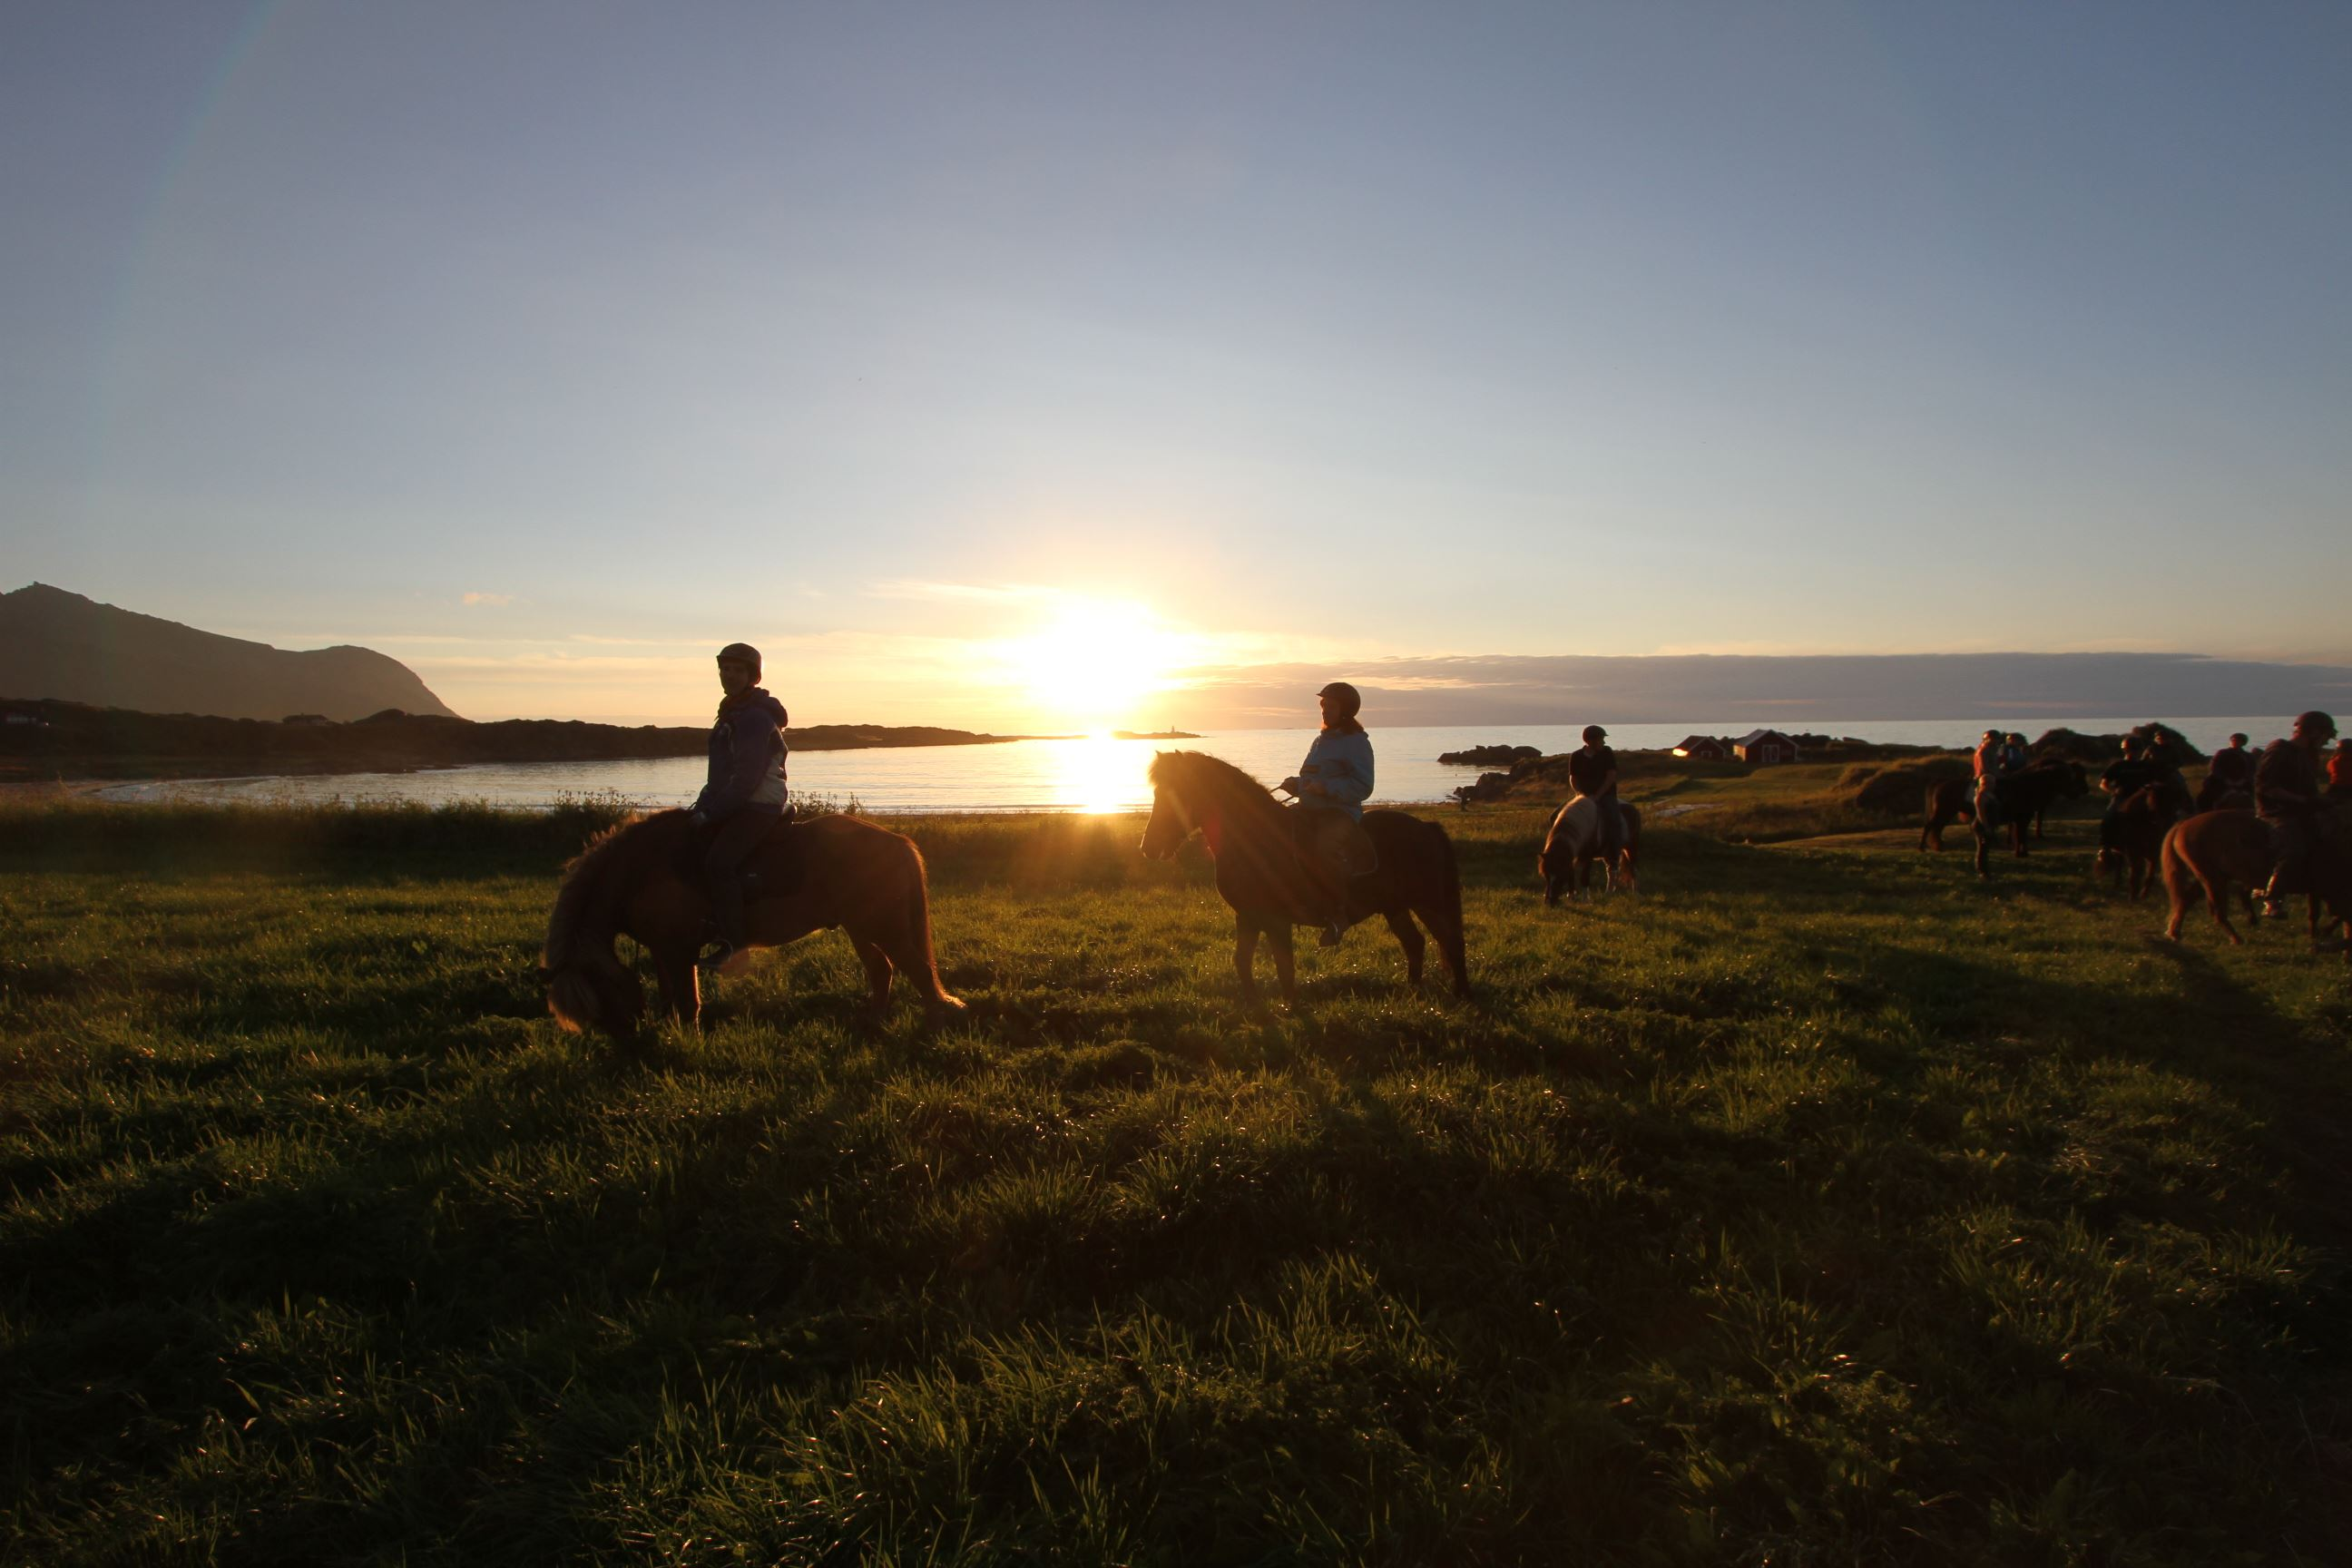 Lofoten by horse - Horseback riding on icelandic horses in Lofoten